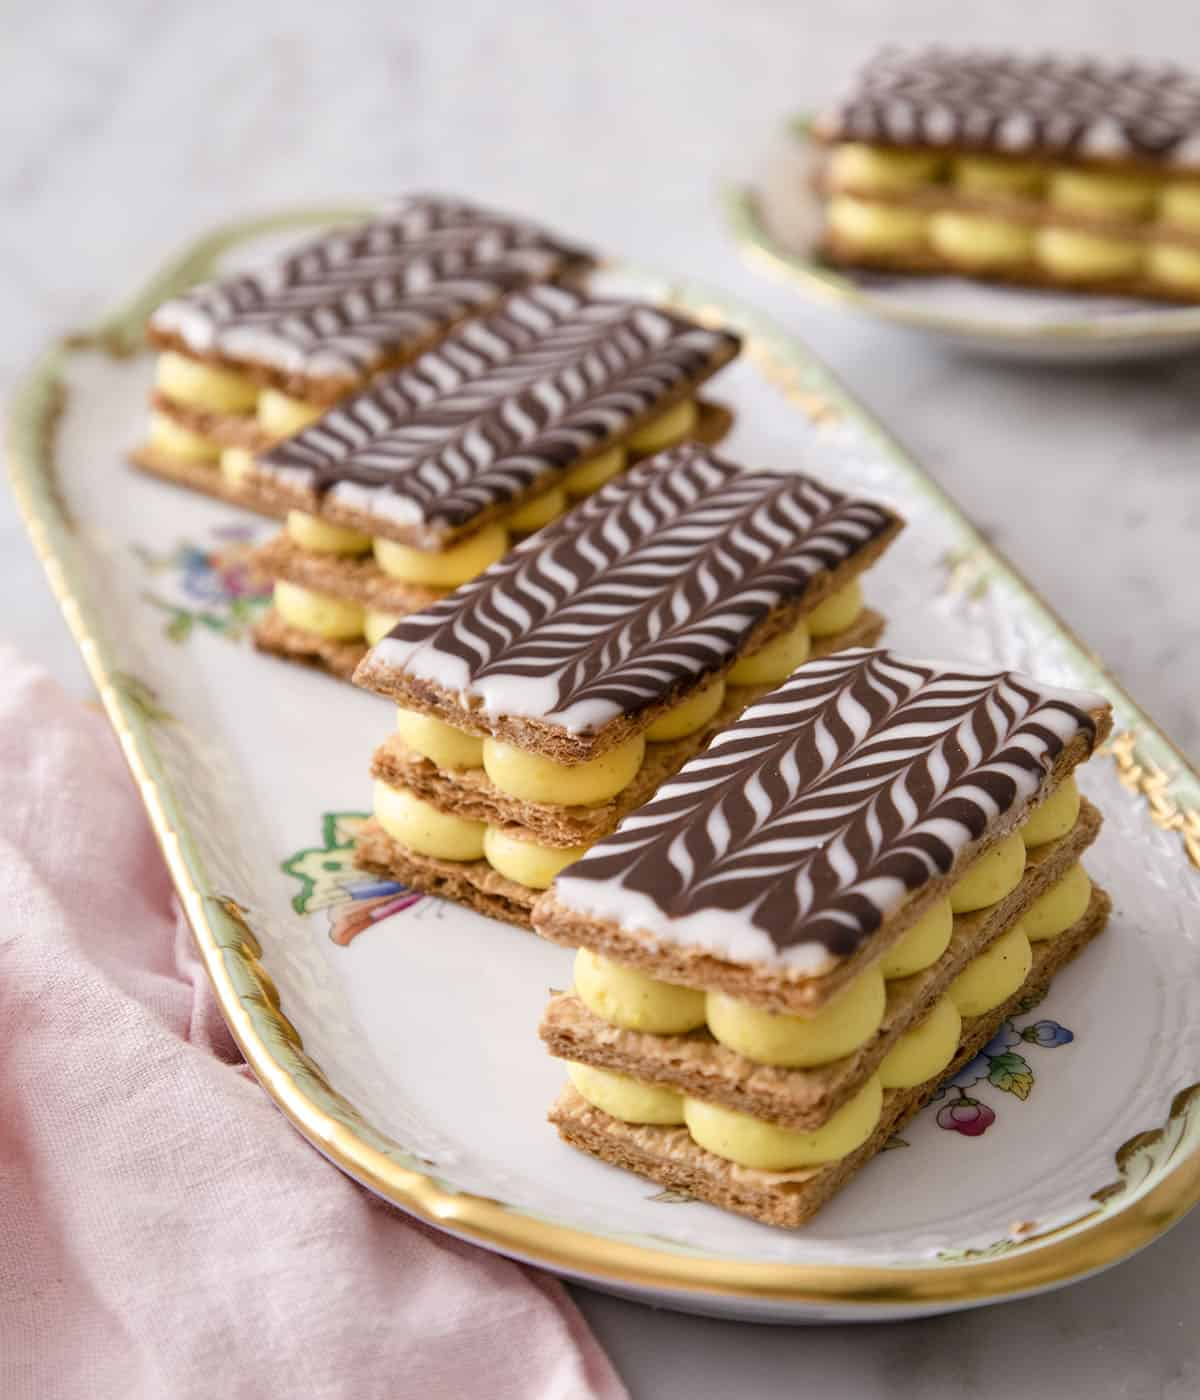 Four Mille Feuille on a serving plate.